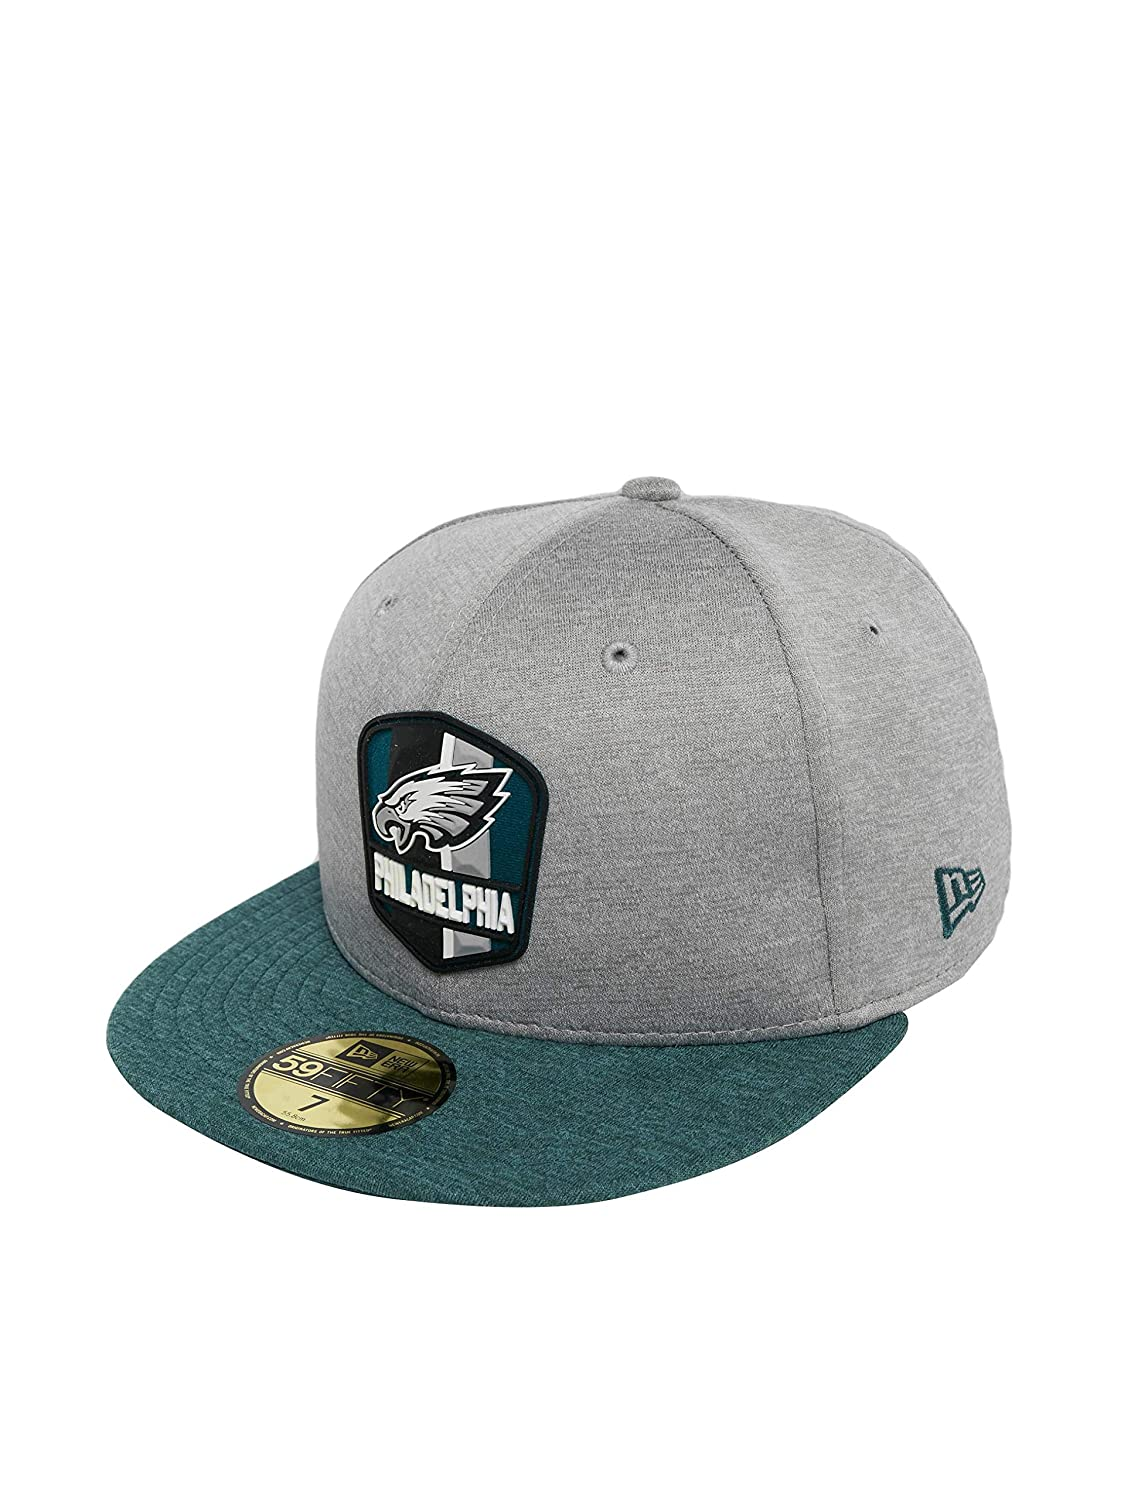 74efb56f329 New Era Women Caps Fitted Cap NFL Philadelphia Eagles 59 Fifty   Amazon.co.uk  Clothing